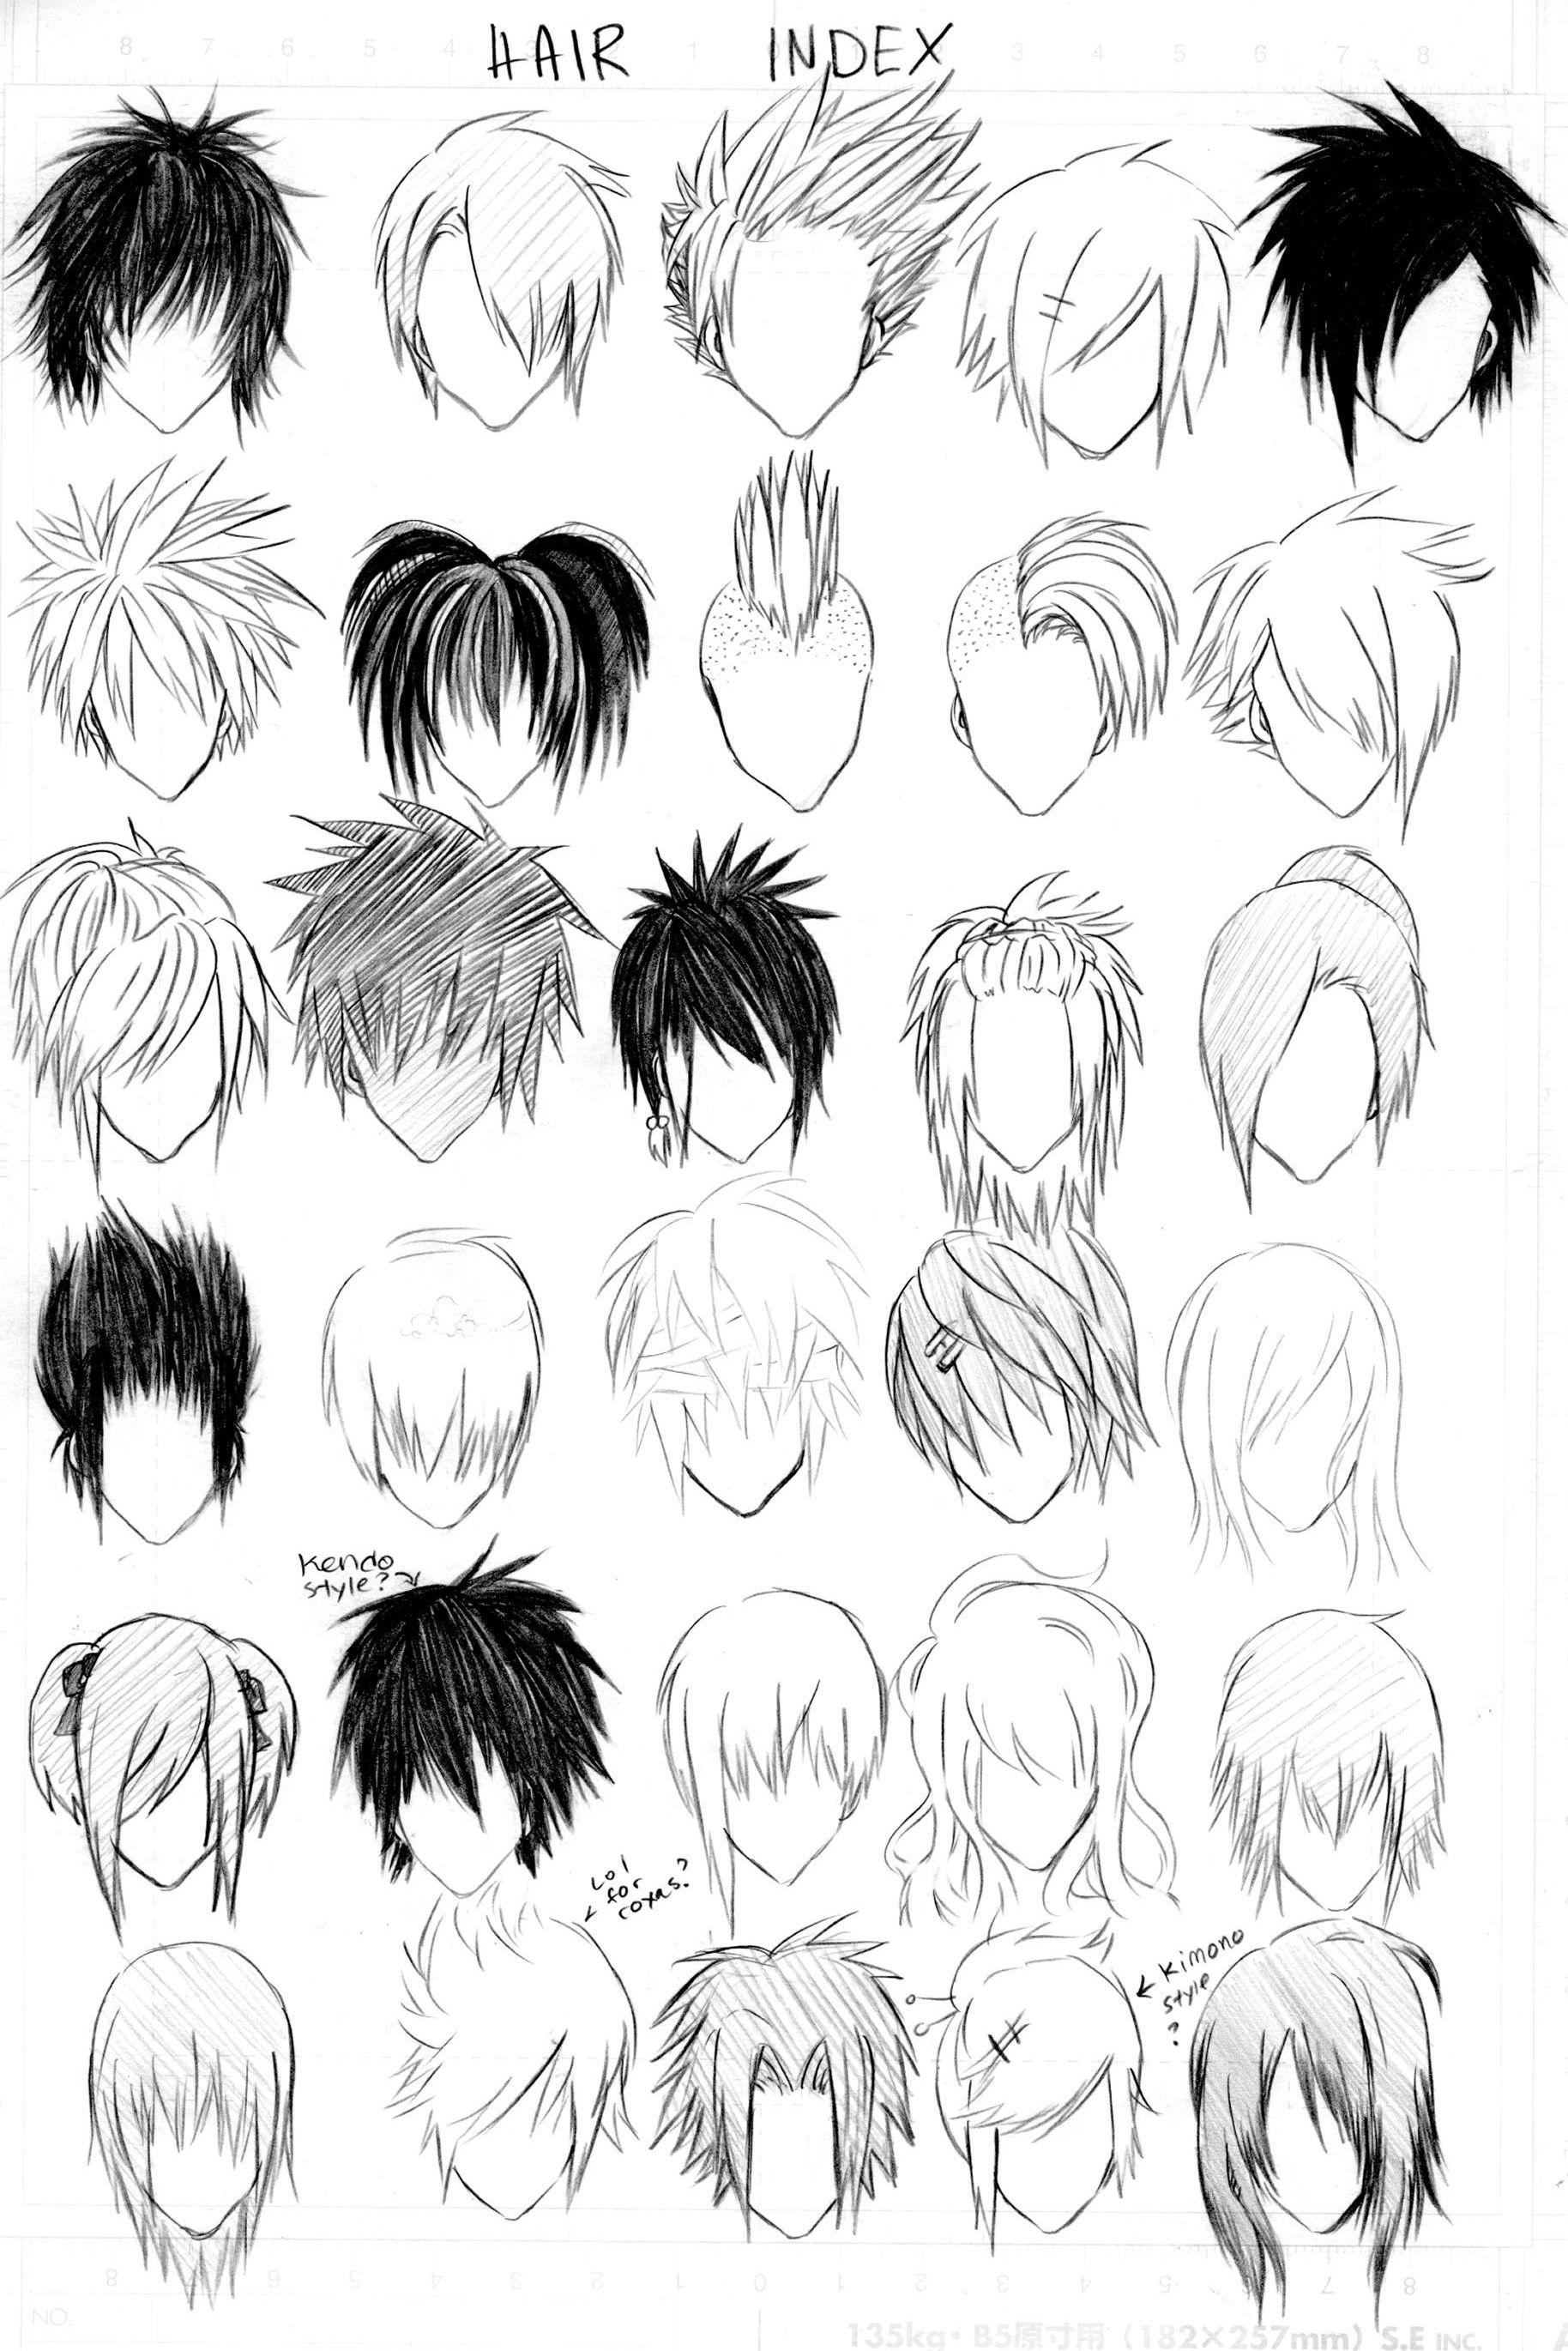 Boy hairstyle line hair index  drawing cartoons  pinterest  drawings anime and